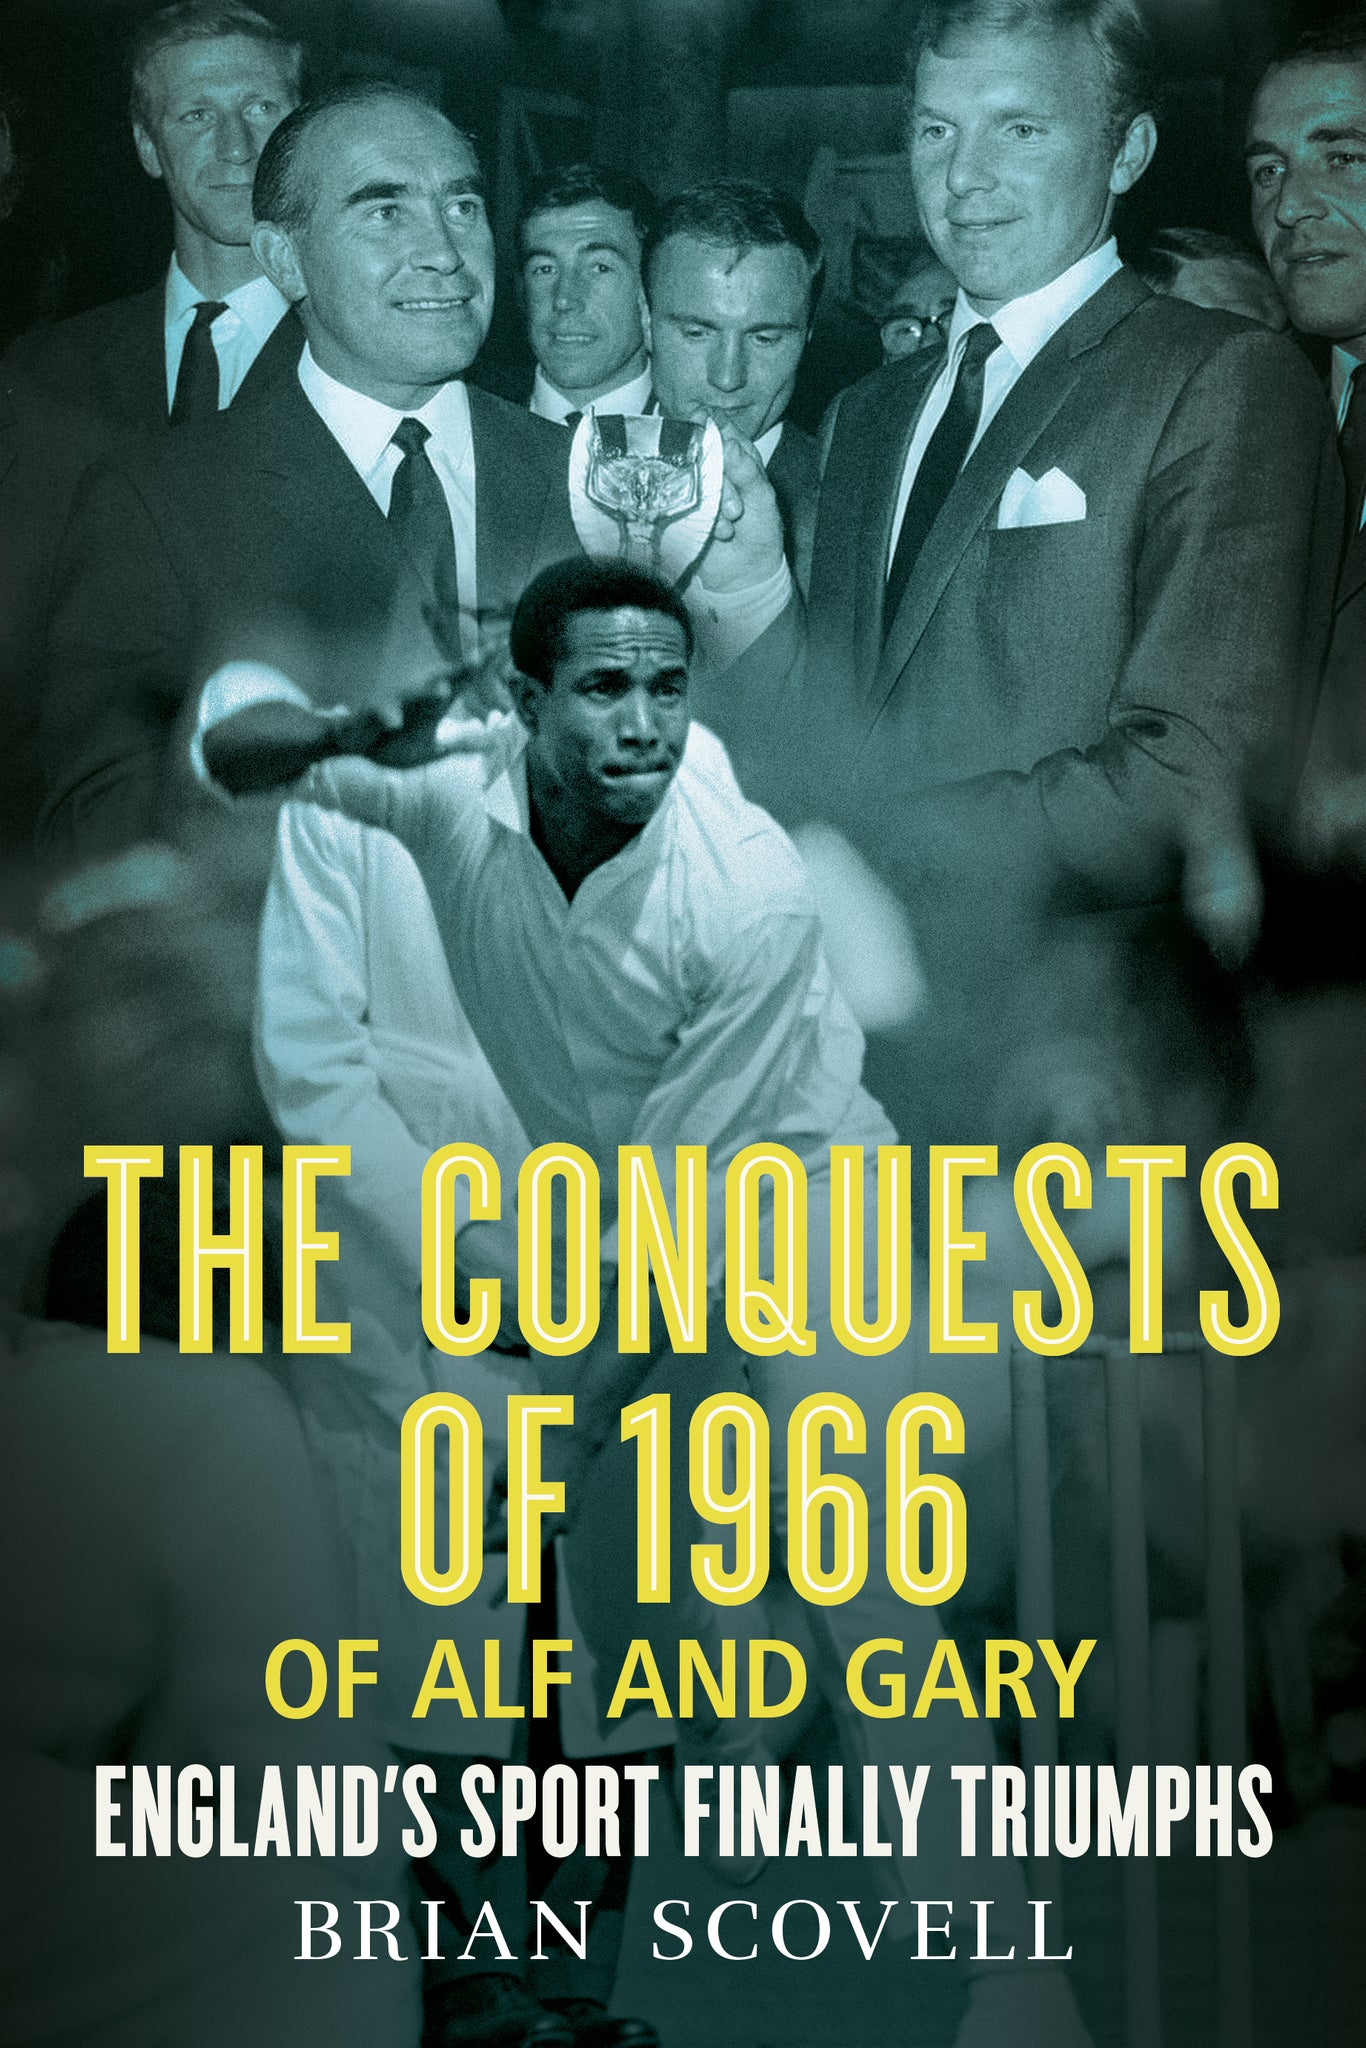 The Conquests of 1966 of Alf and Gary: England's Sport Finally Triumphs